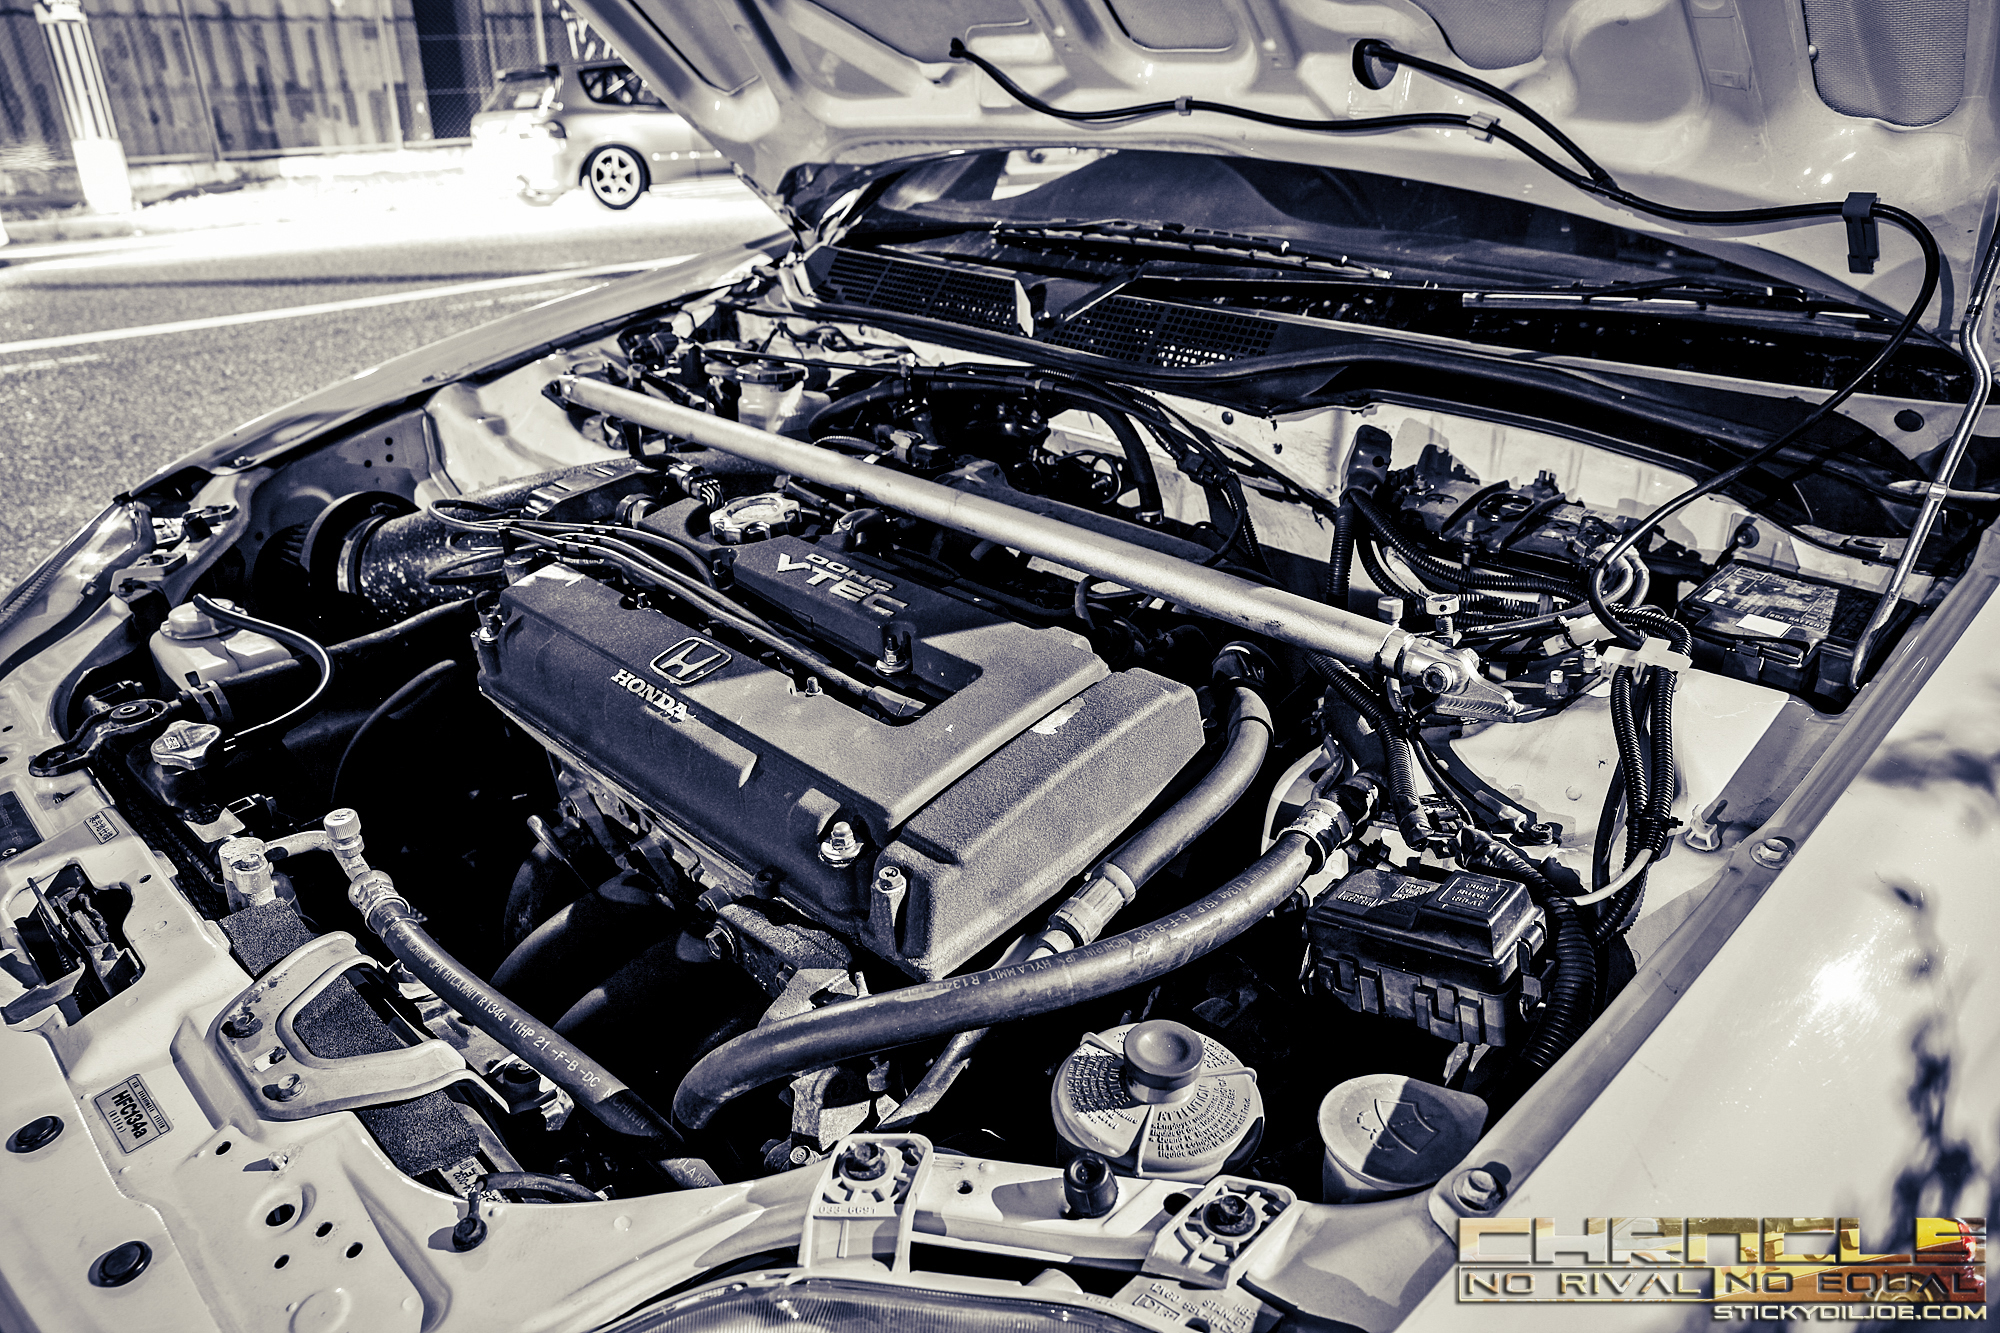 A factory B16B Type R engine that remains untouched inside of an EK9 CTR from LAW BREAK